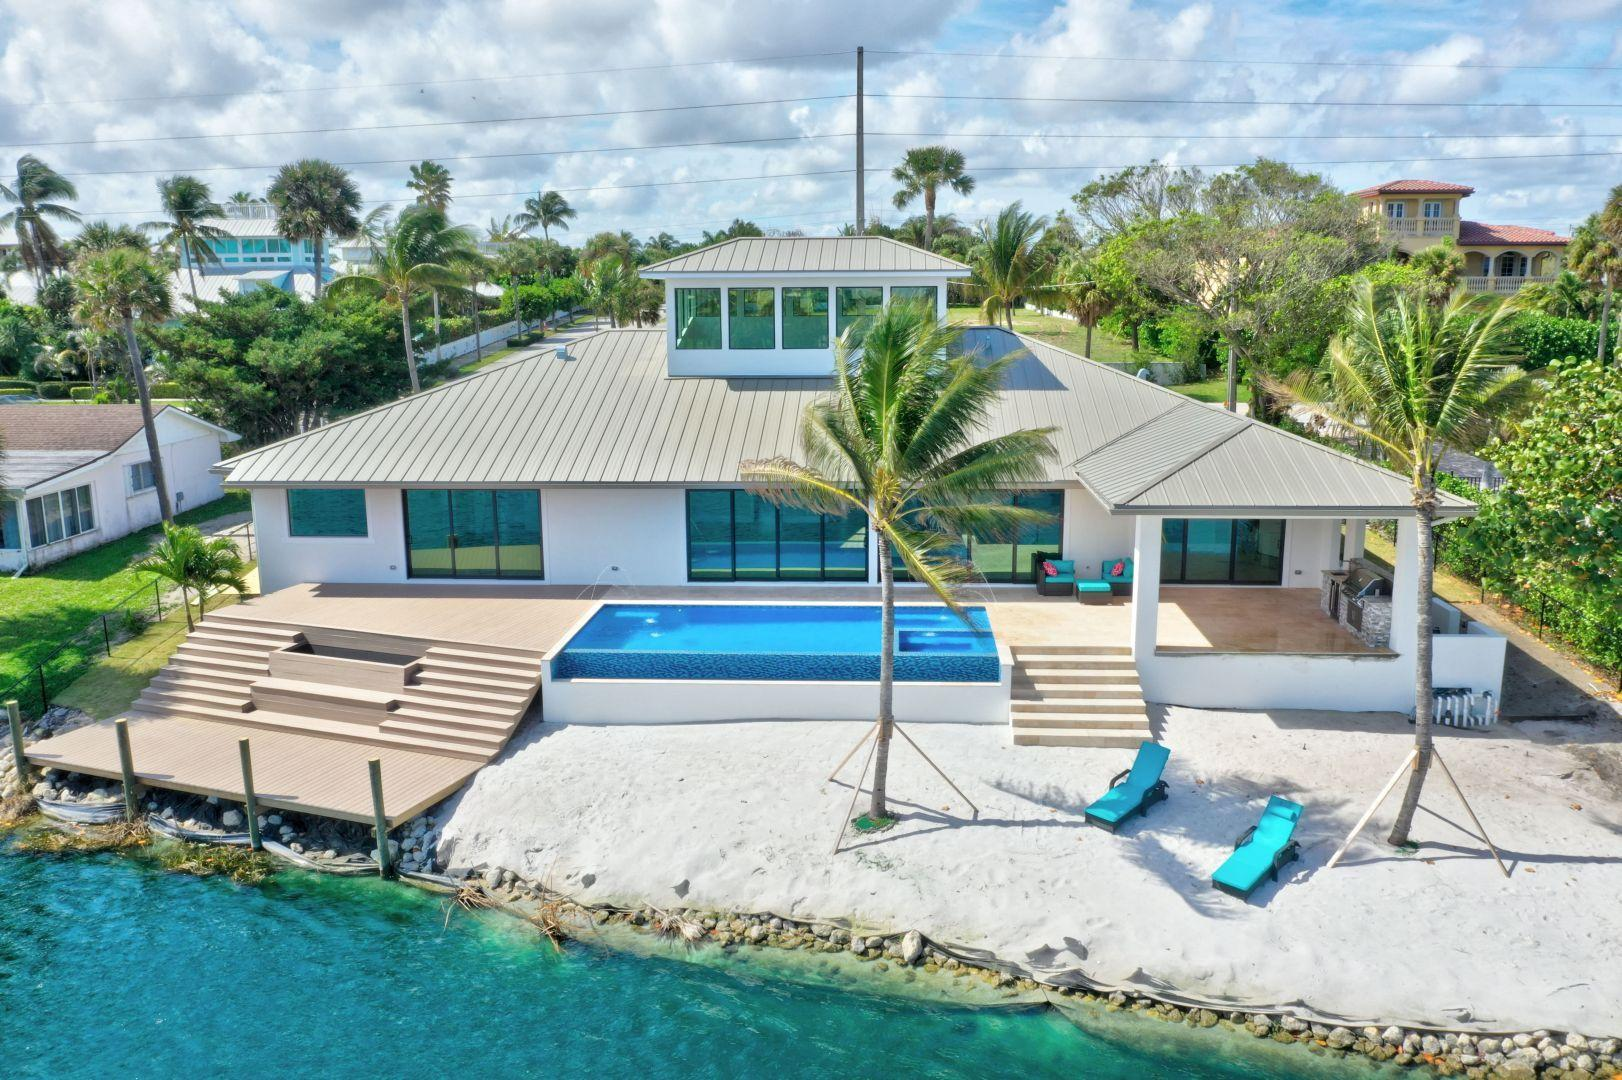 New Home for sale at 140 Ocean Drive in Juno Beach